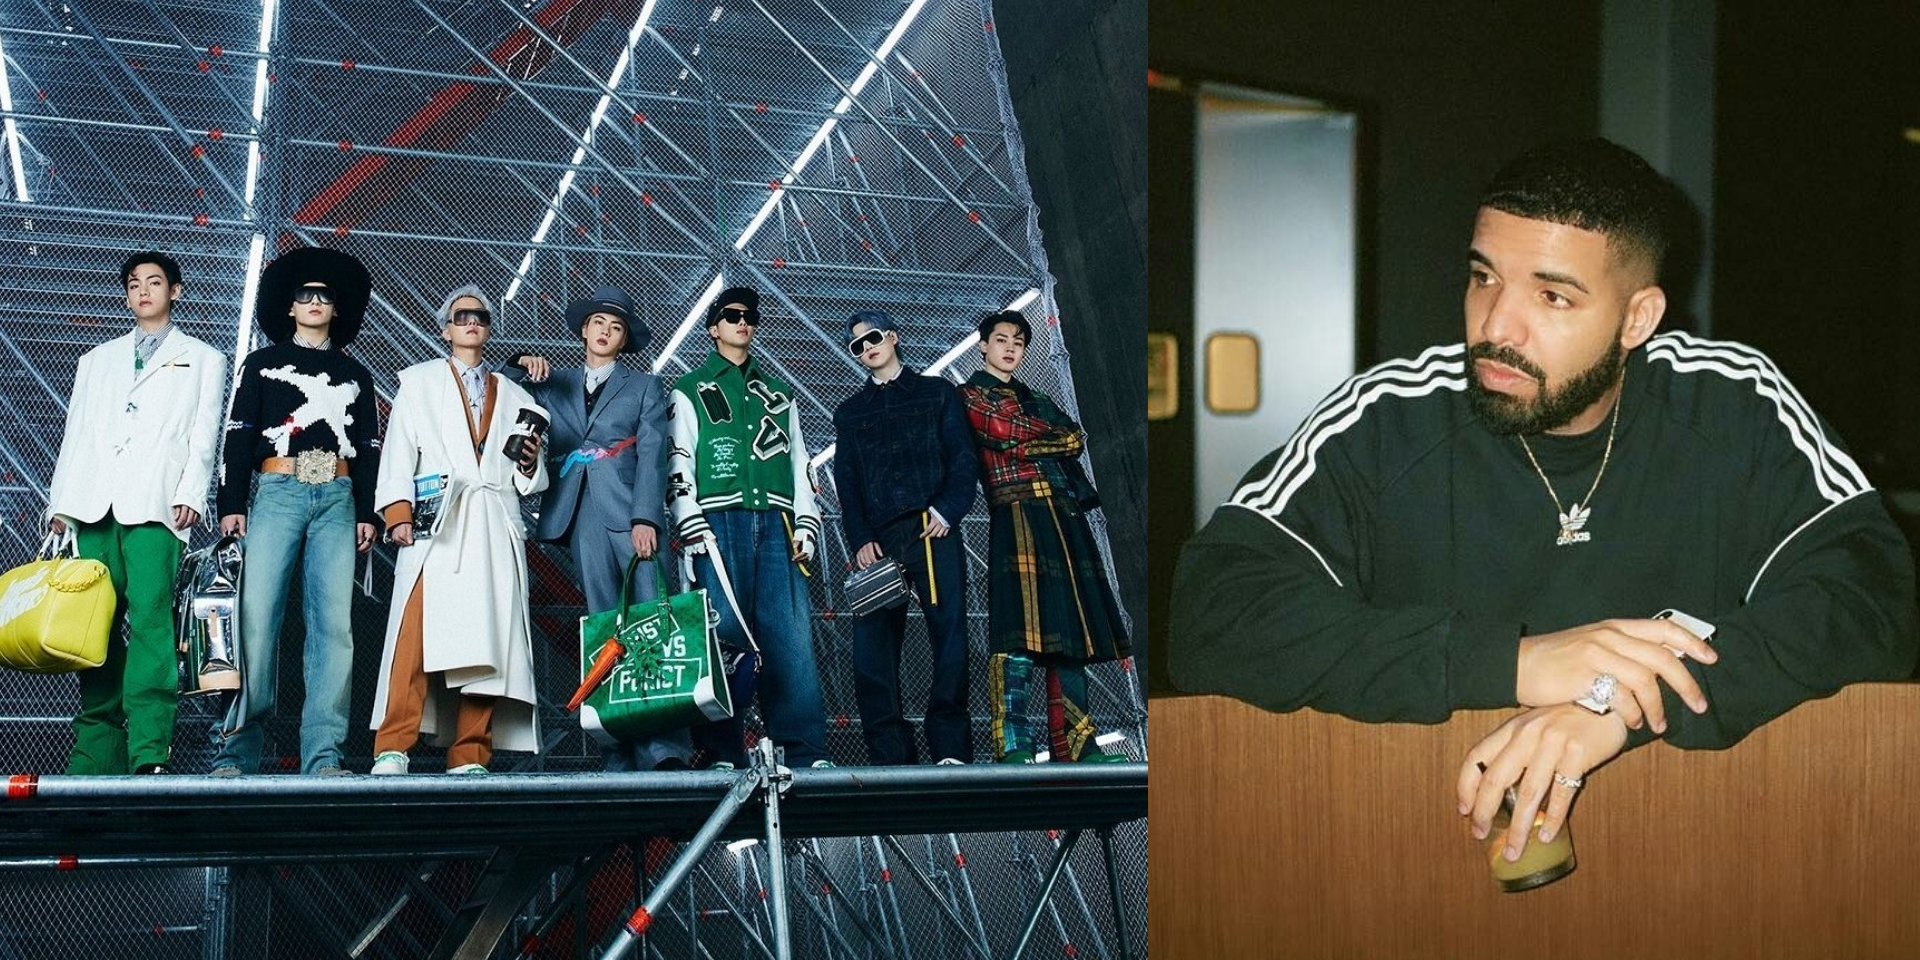 BTS, Drake, Marc Jacobs, and more design trunks to celebrate Louis Vuitton's 200th birthday